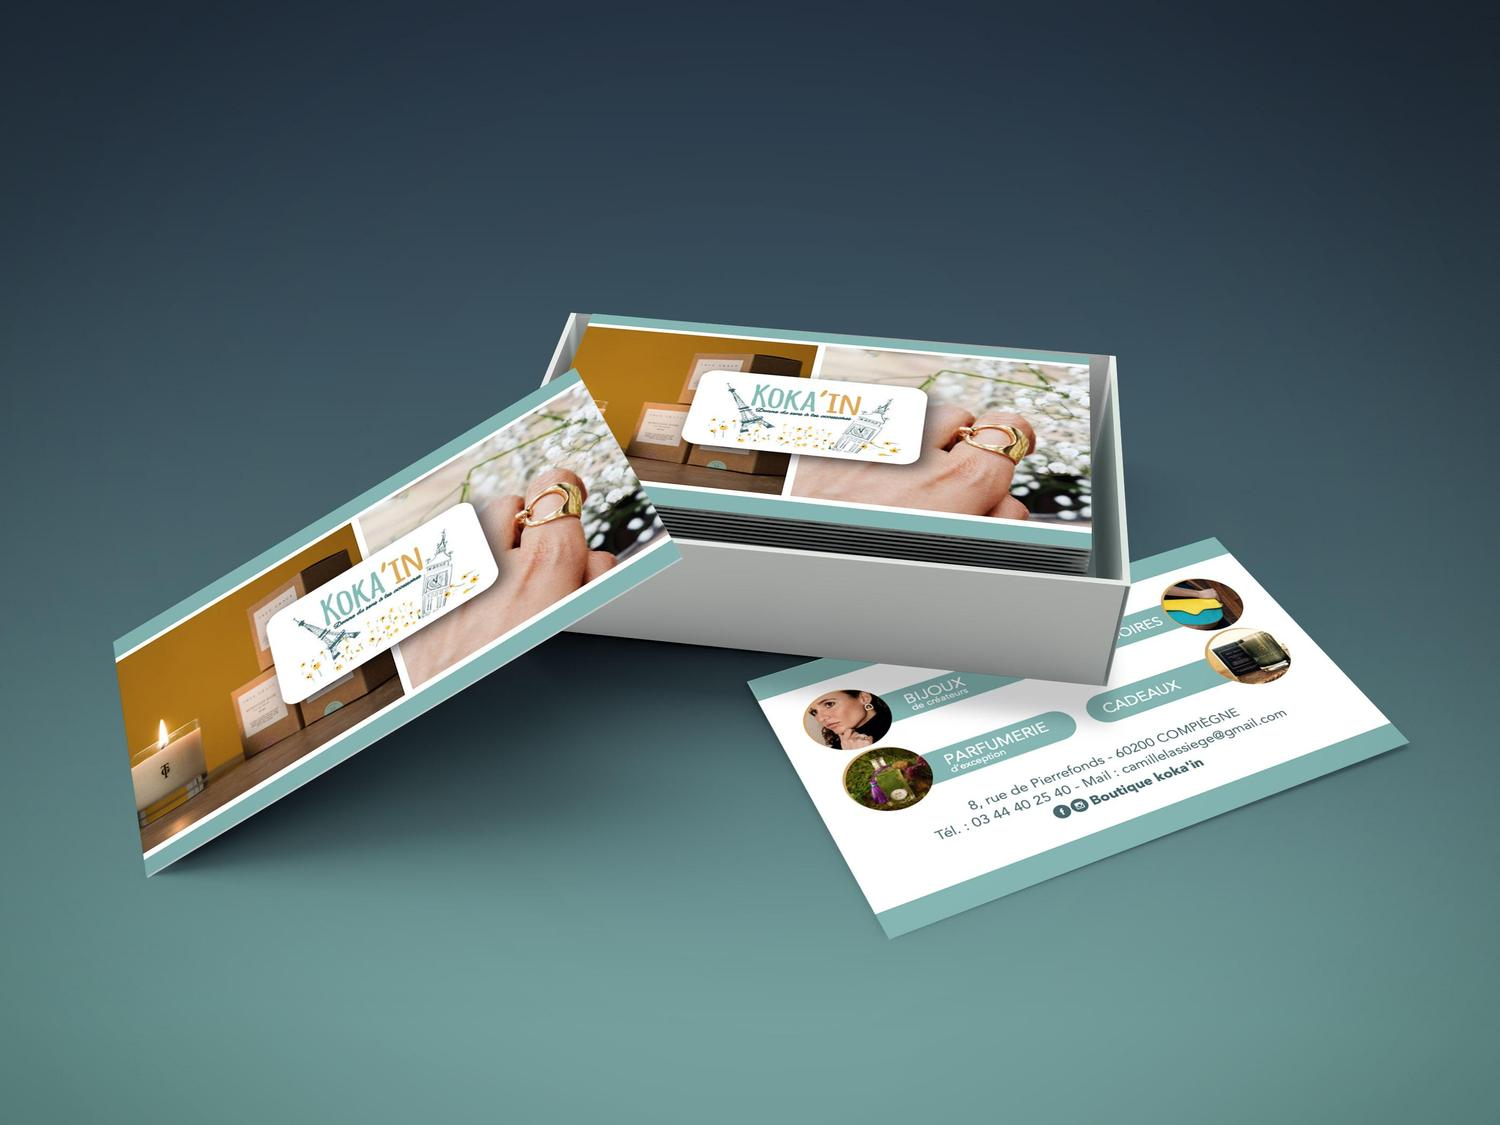 Cartes de visite en finition MAT SOFT TOUCH